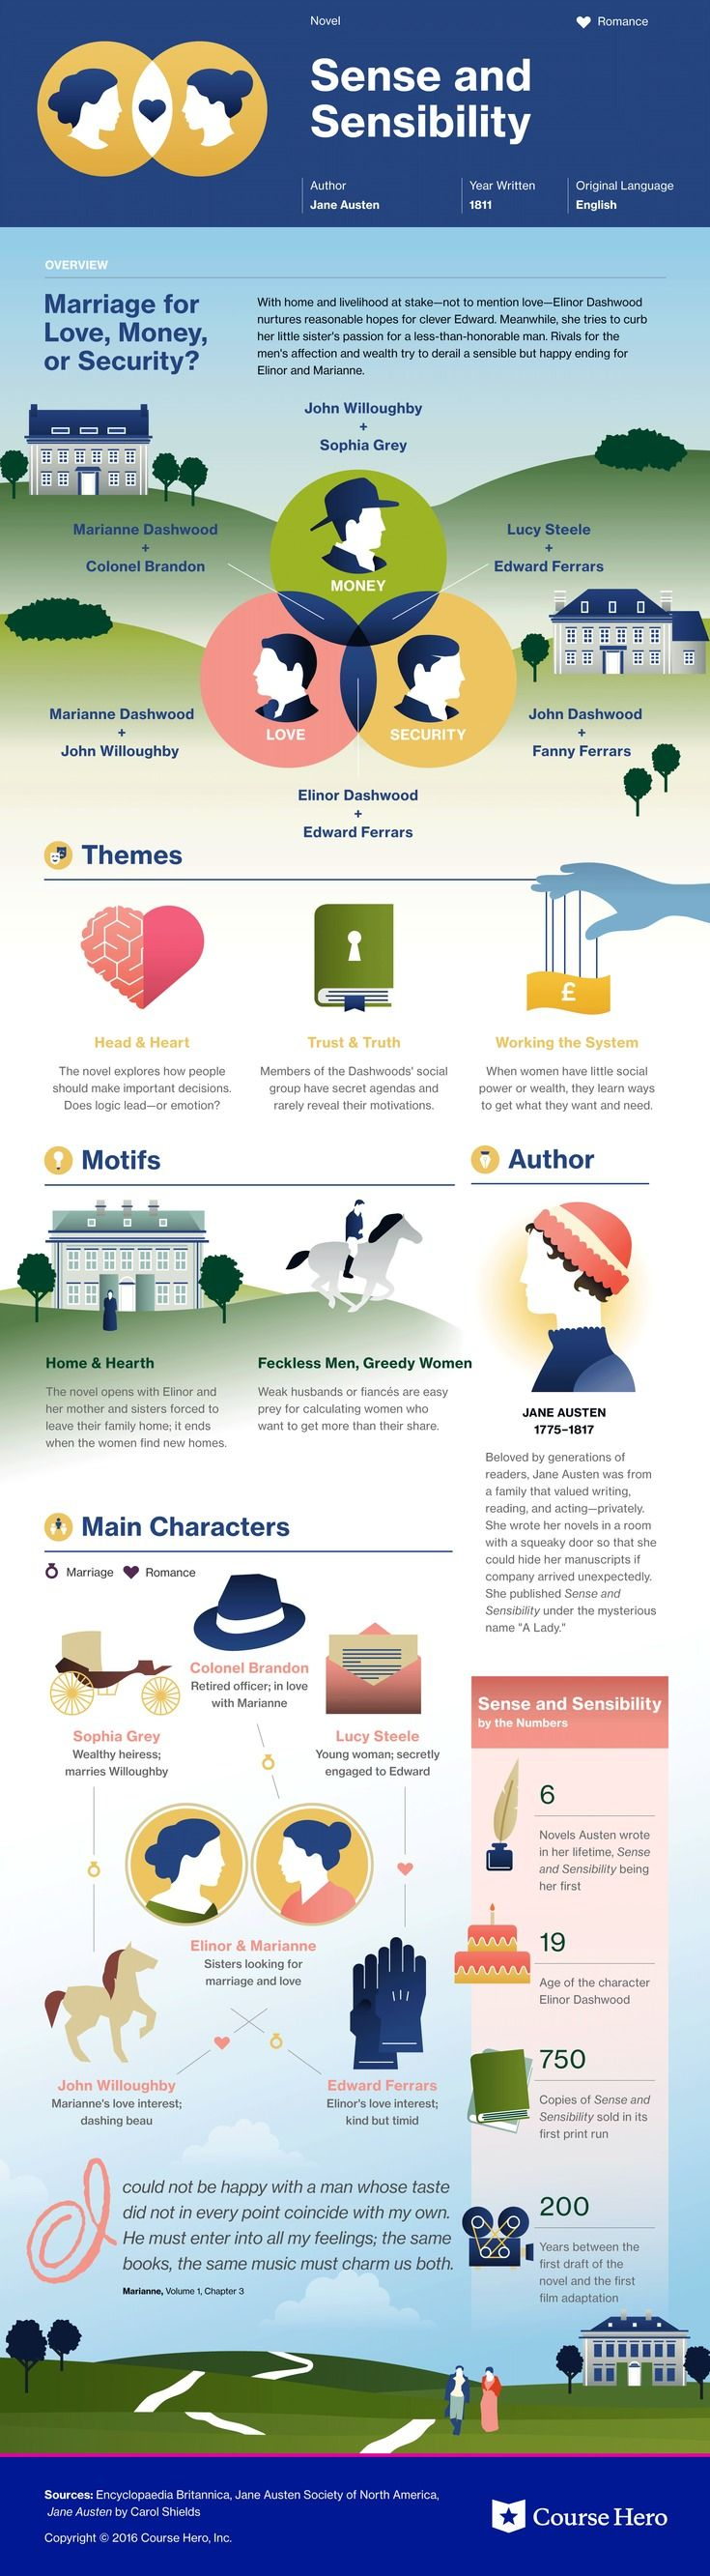 .This @CourseHero infographic on Sense and Sensibility is both visually stunning and informative!